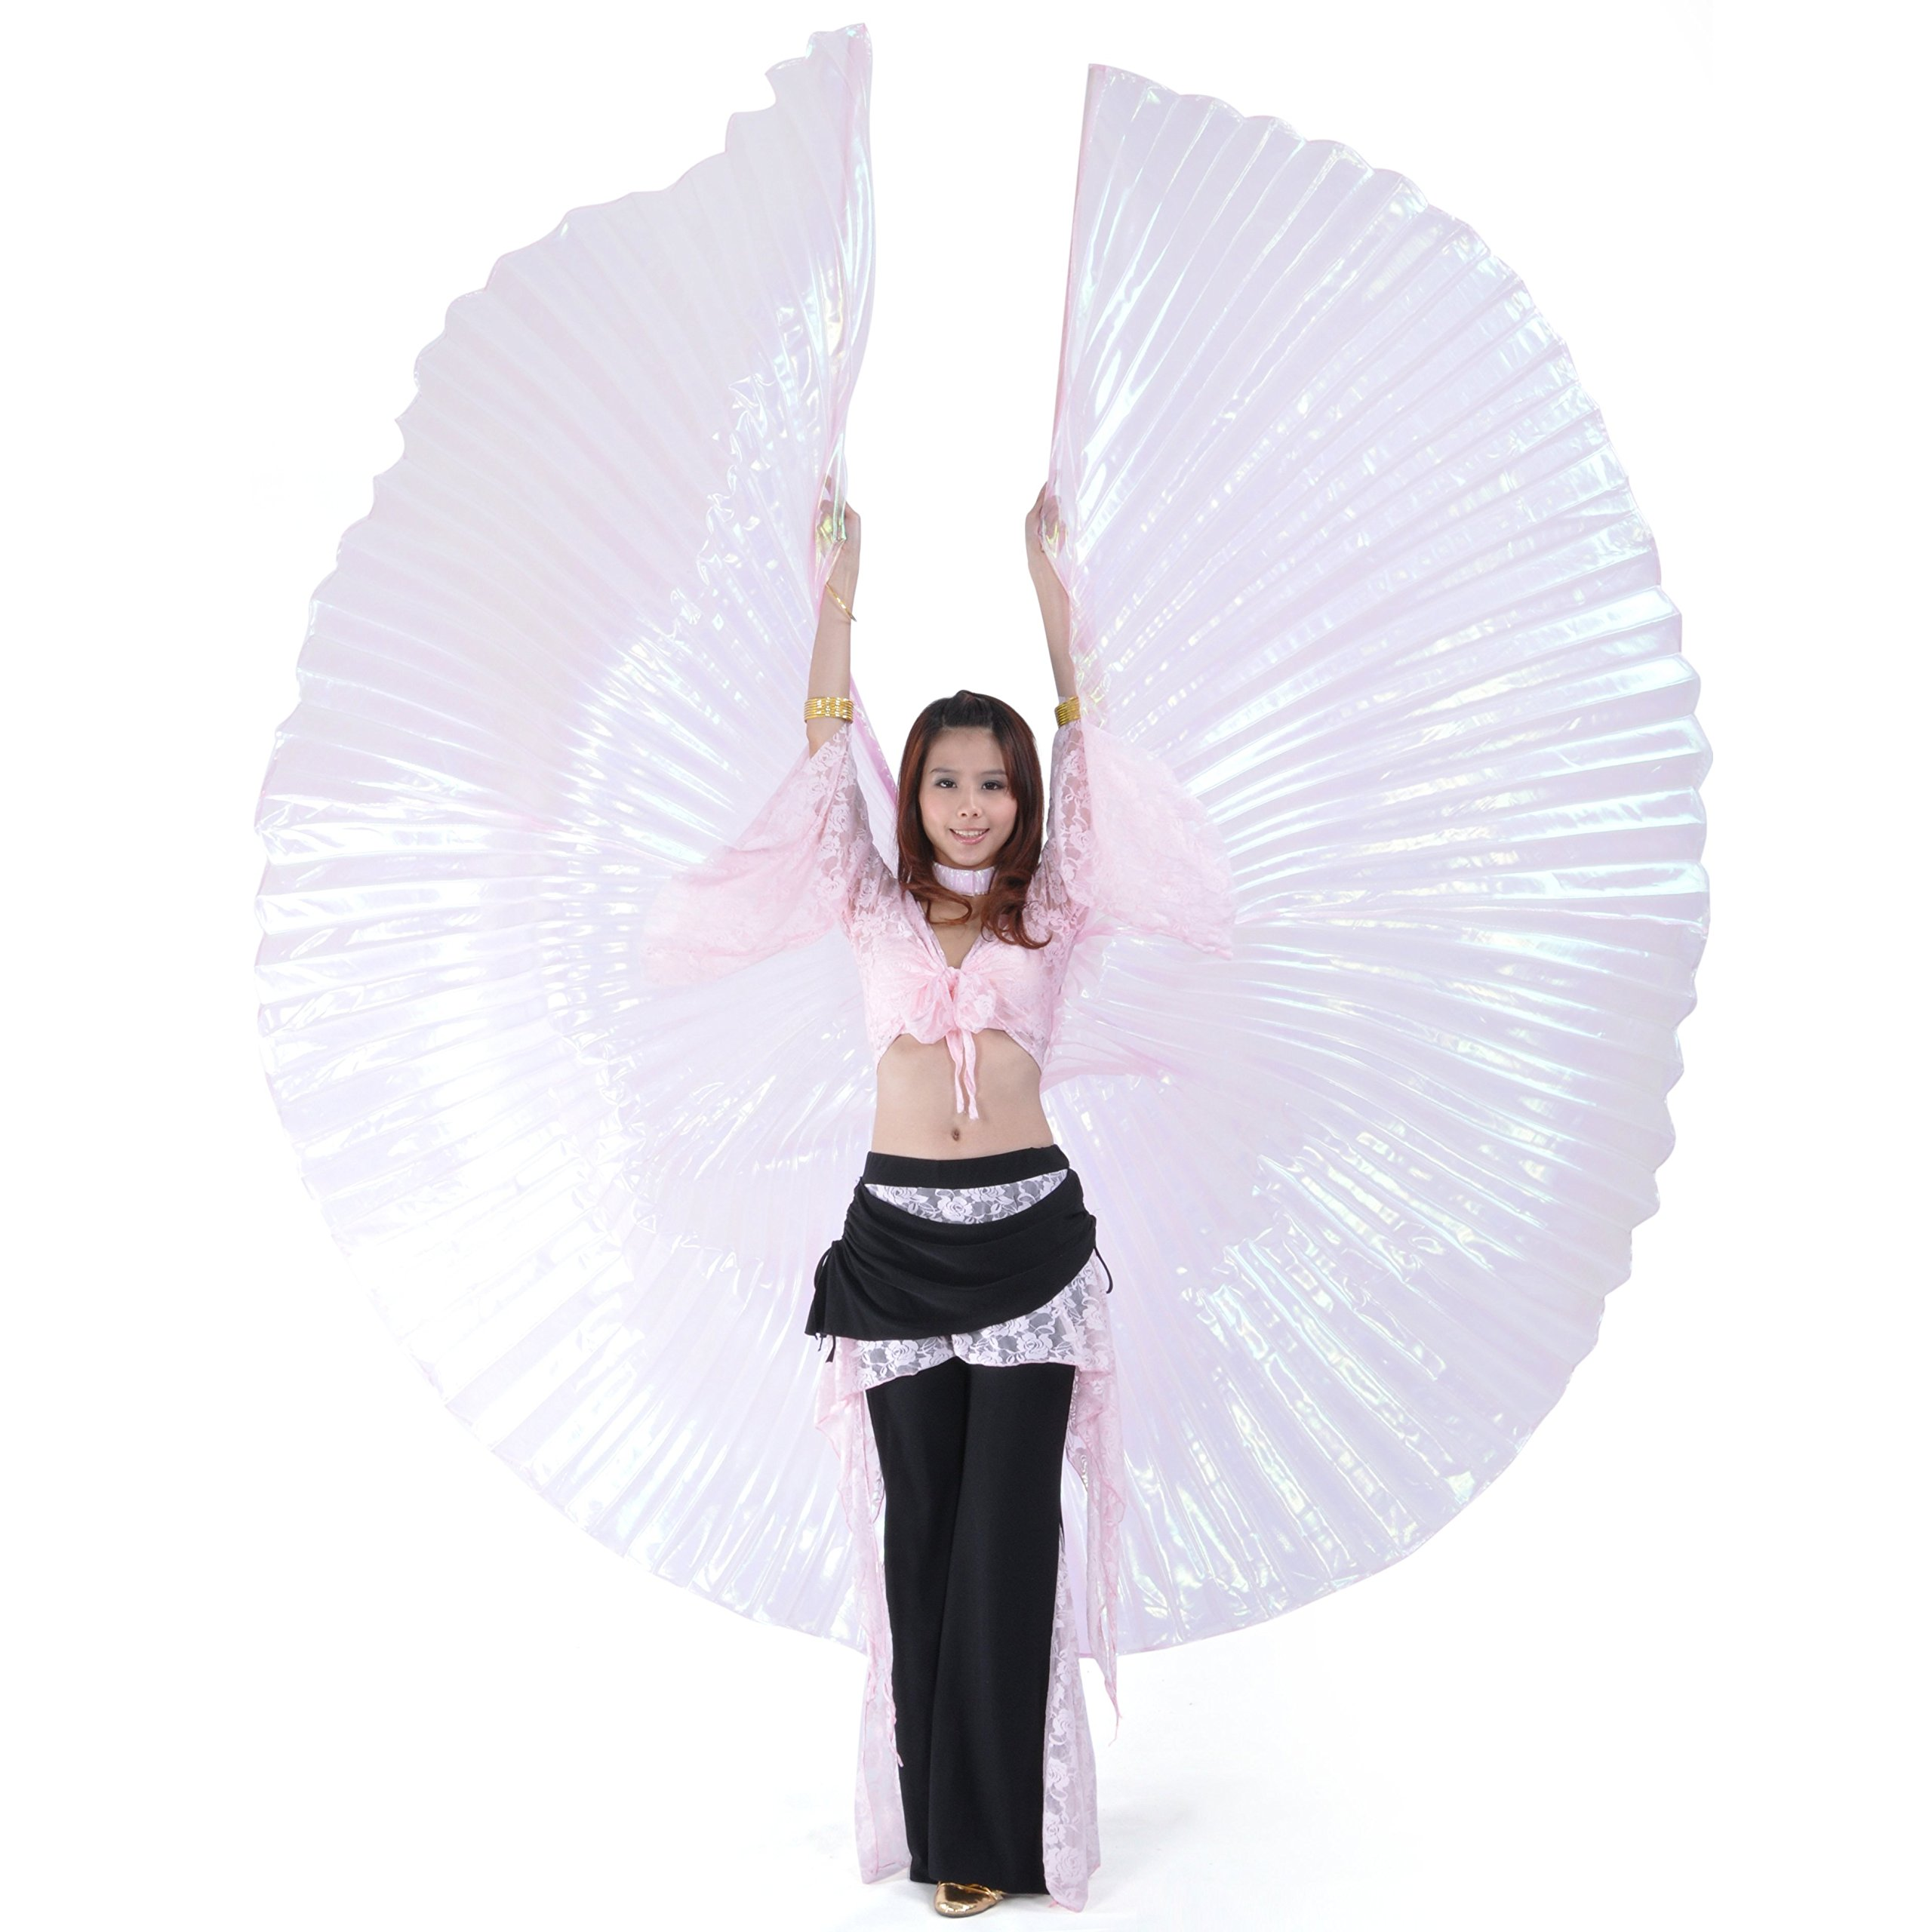 BellyLady Transparent Belly Dance Costume Isis Wings With Sticks, Gift Idea PINK